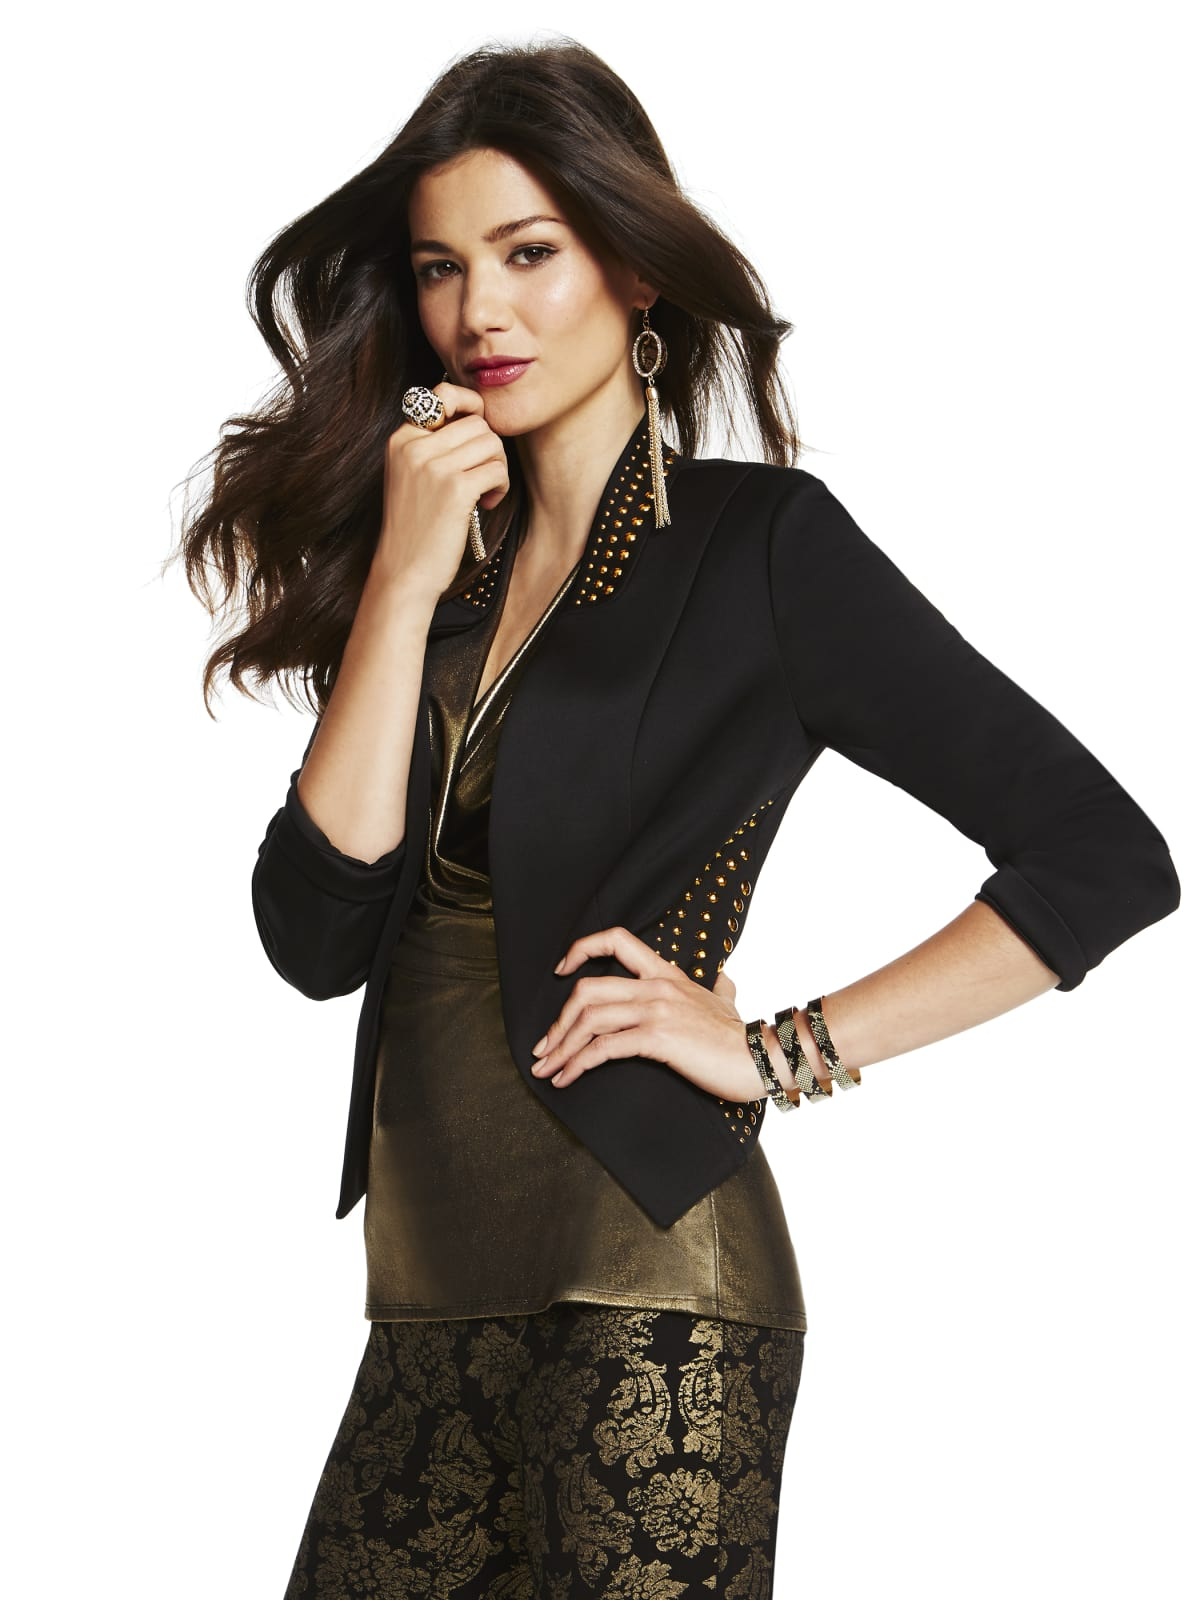 Jacket and pants from the Thalia collection at Macy's